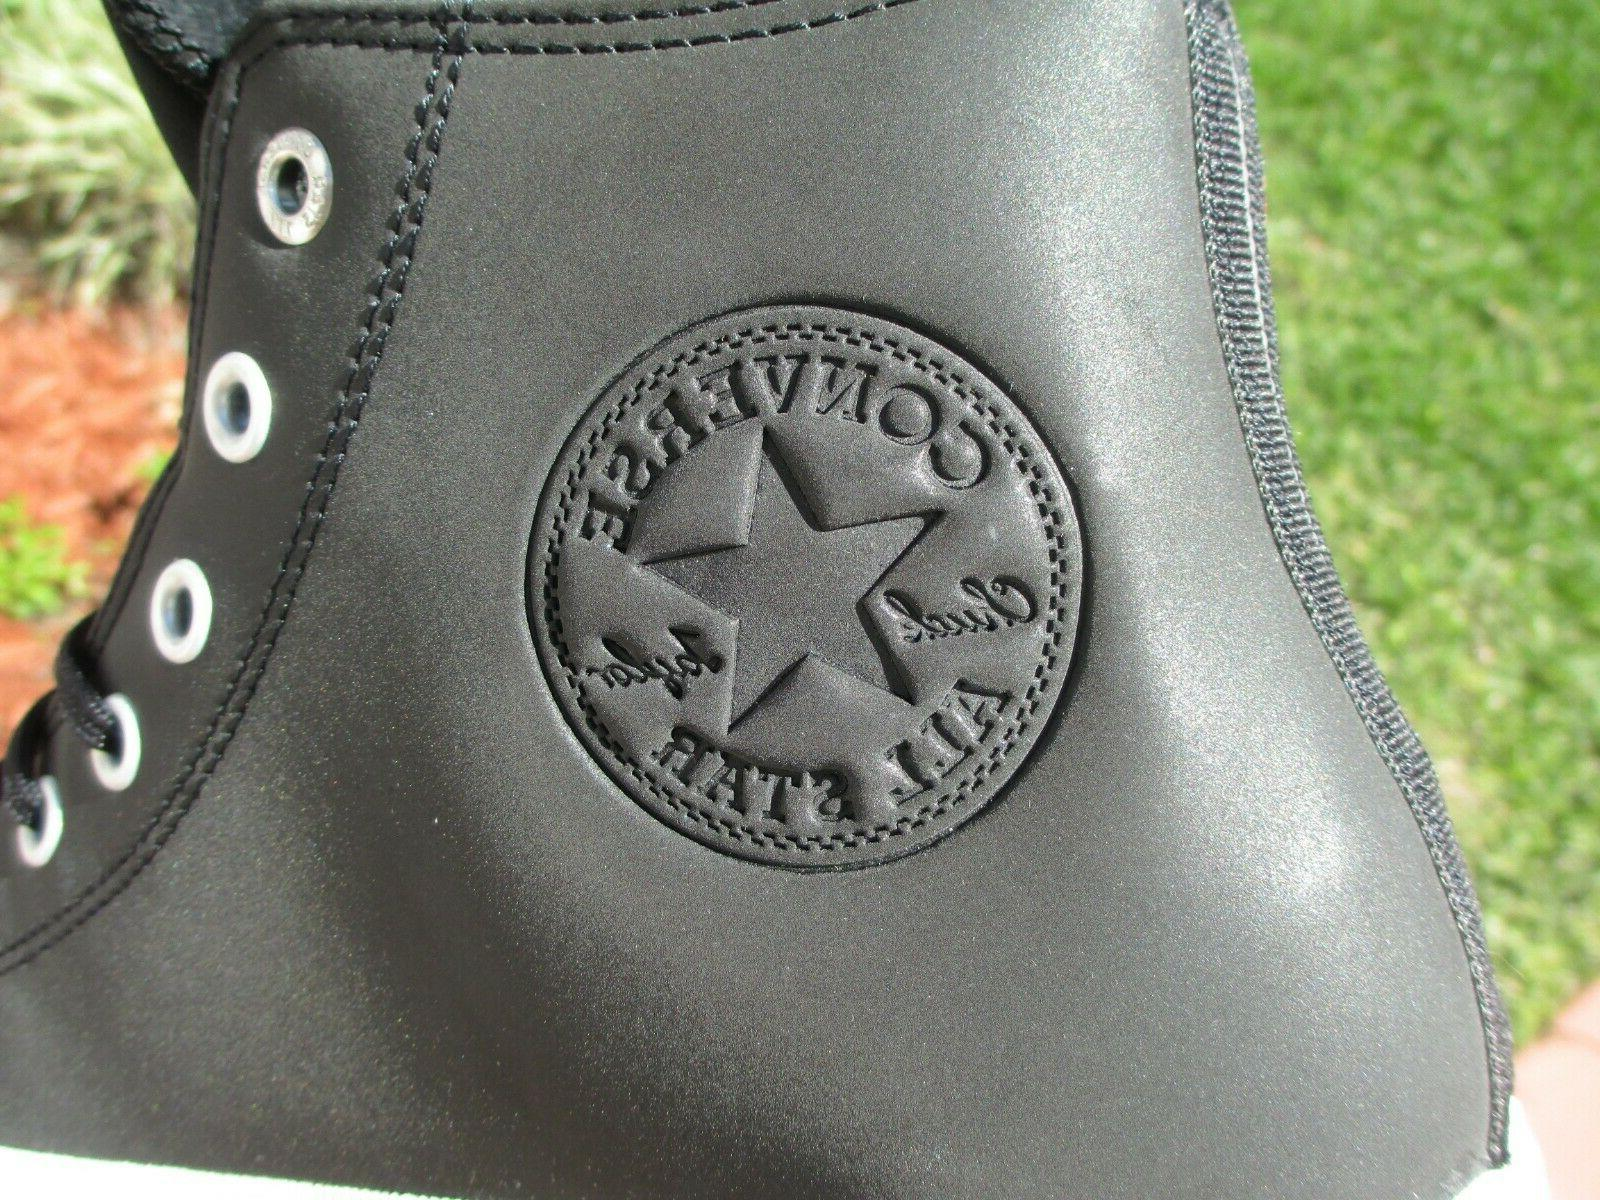 CONVERSE STAR WATER PROOF 11 158839C NEW